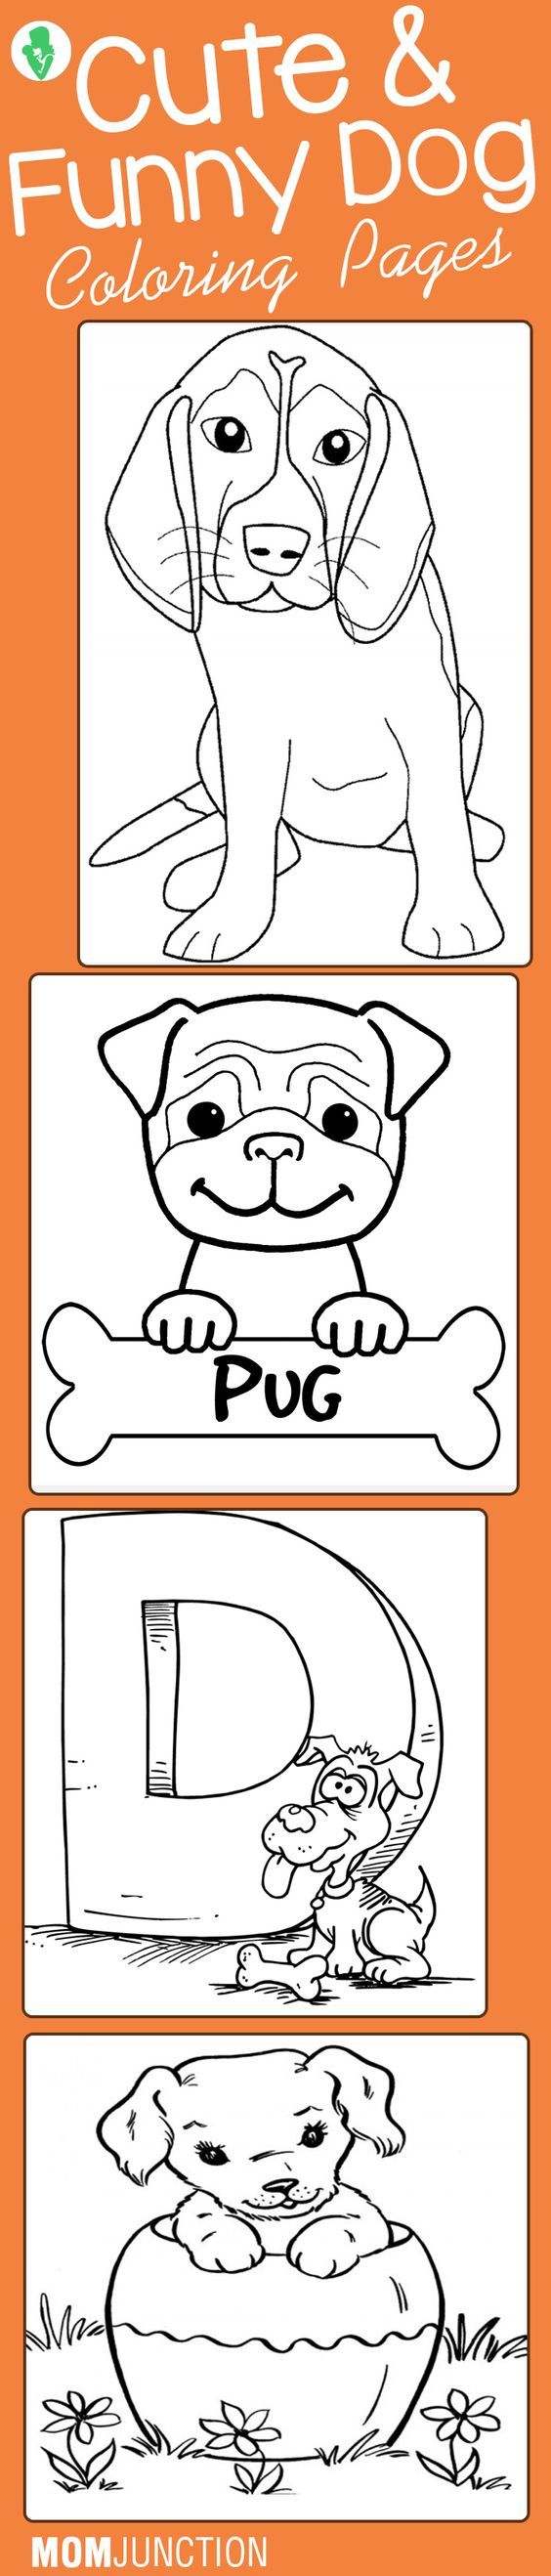 25 Cute Funny Dog Coloring Pages Your Toddler Will Love To Color Dogs Are